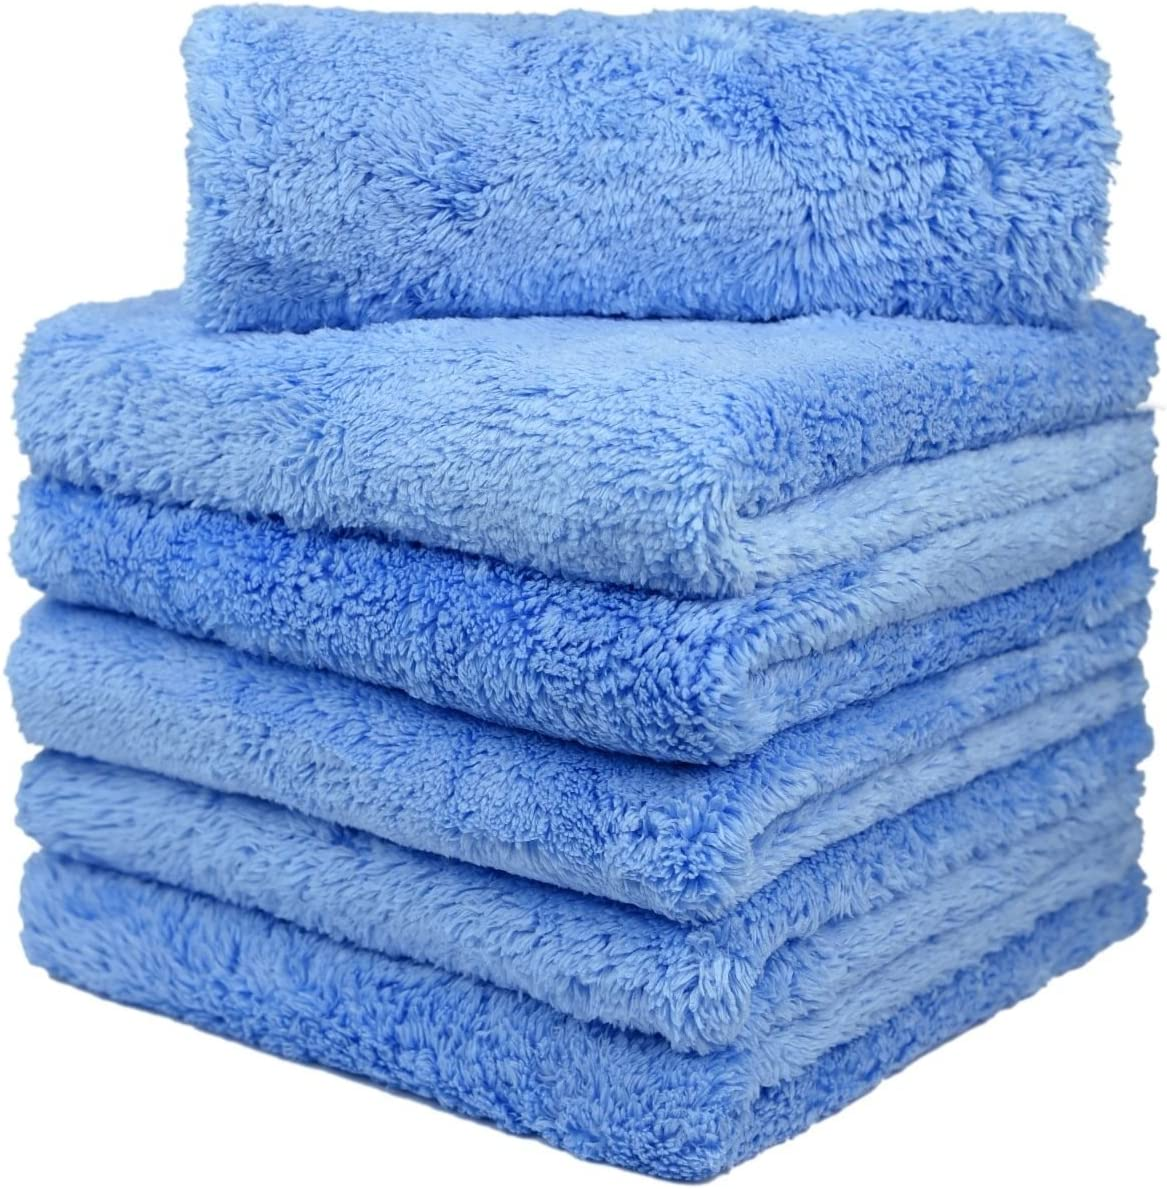 5Pack 16x16 Car Drying Super Absorbent Towel Car care and Motorbike Paint Washing Buffing Ultra Plush 450gsm Detailing Cloth Kingsheep Edgeless Microfiber Towel Grey